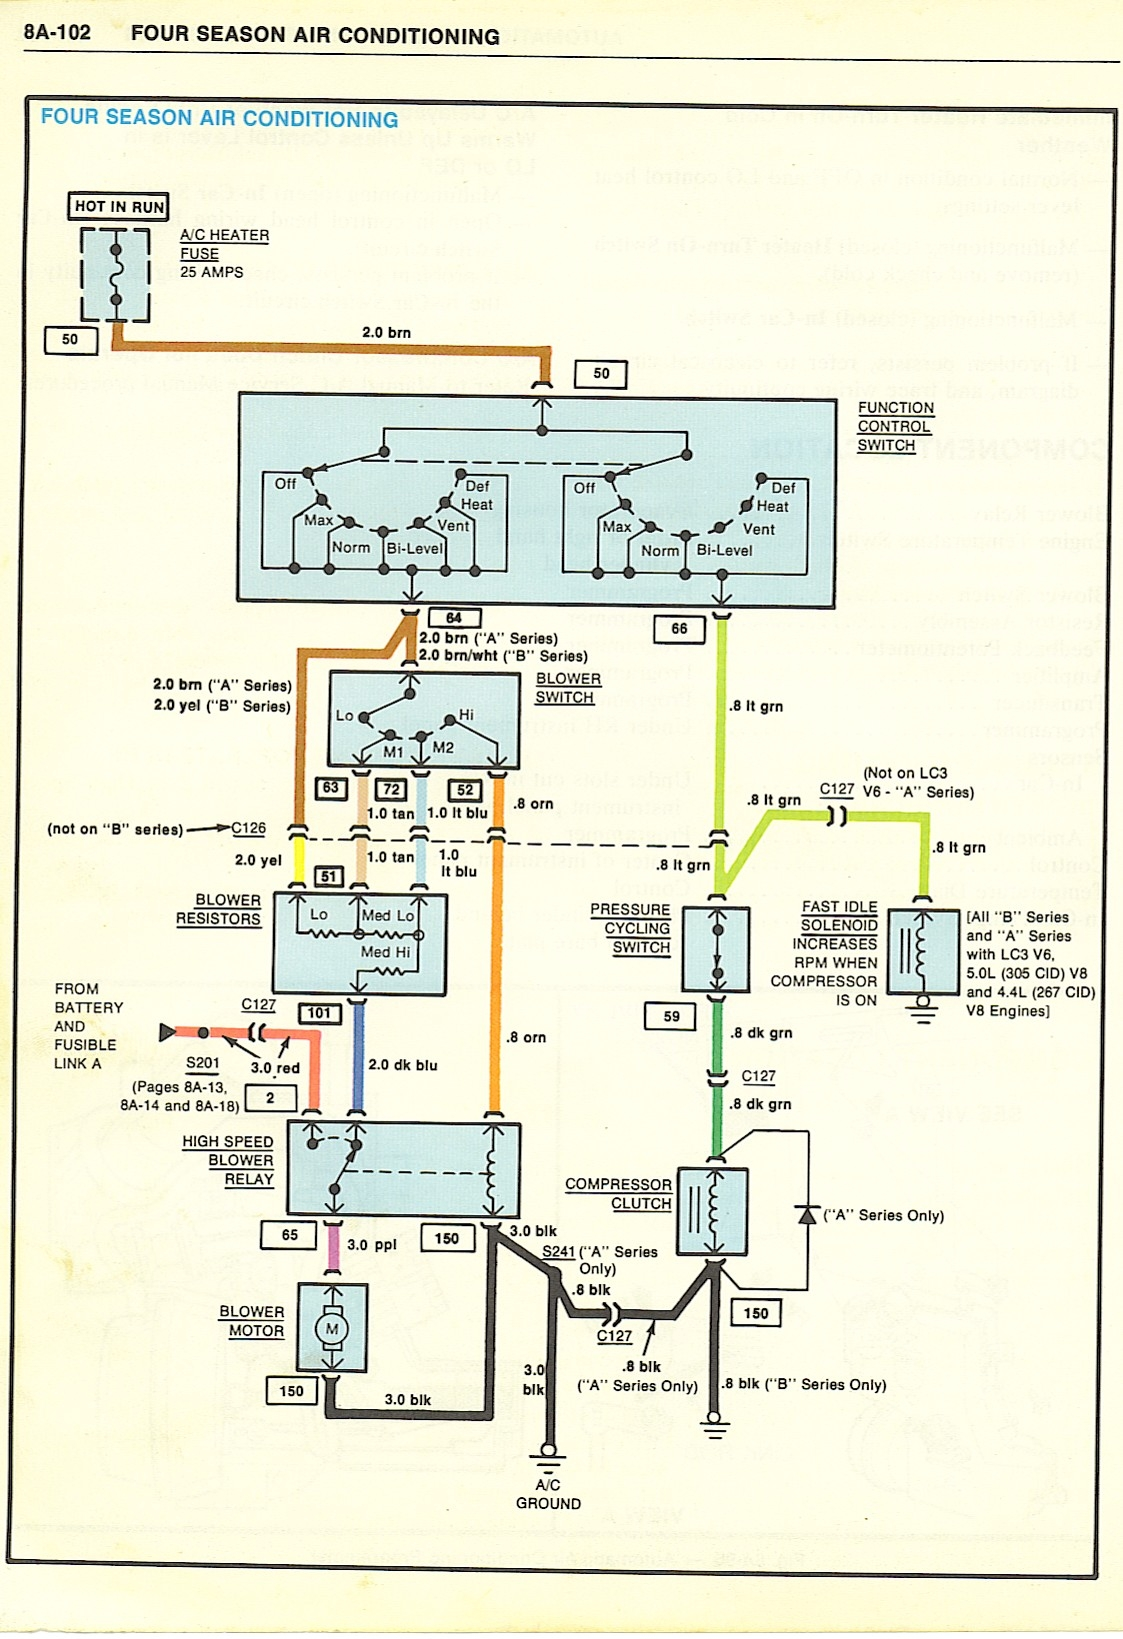 1970 Chevelle Heater Ac Wiring Diagram | Wiring Library